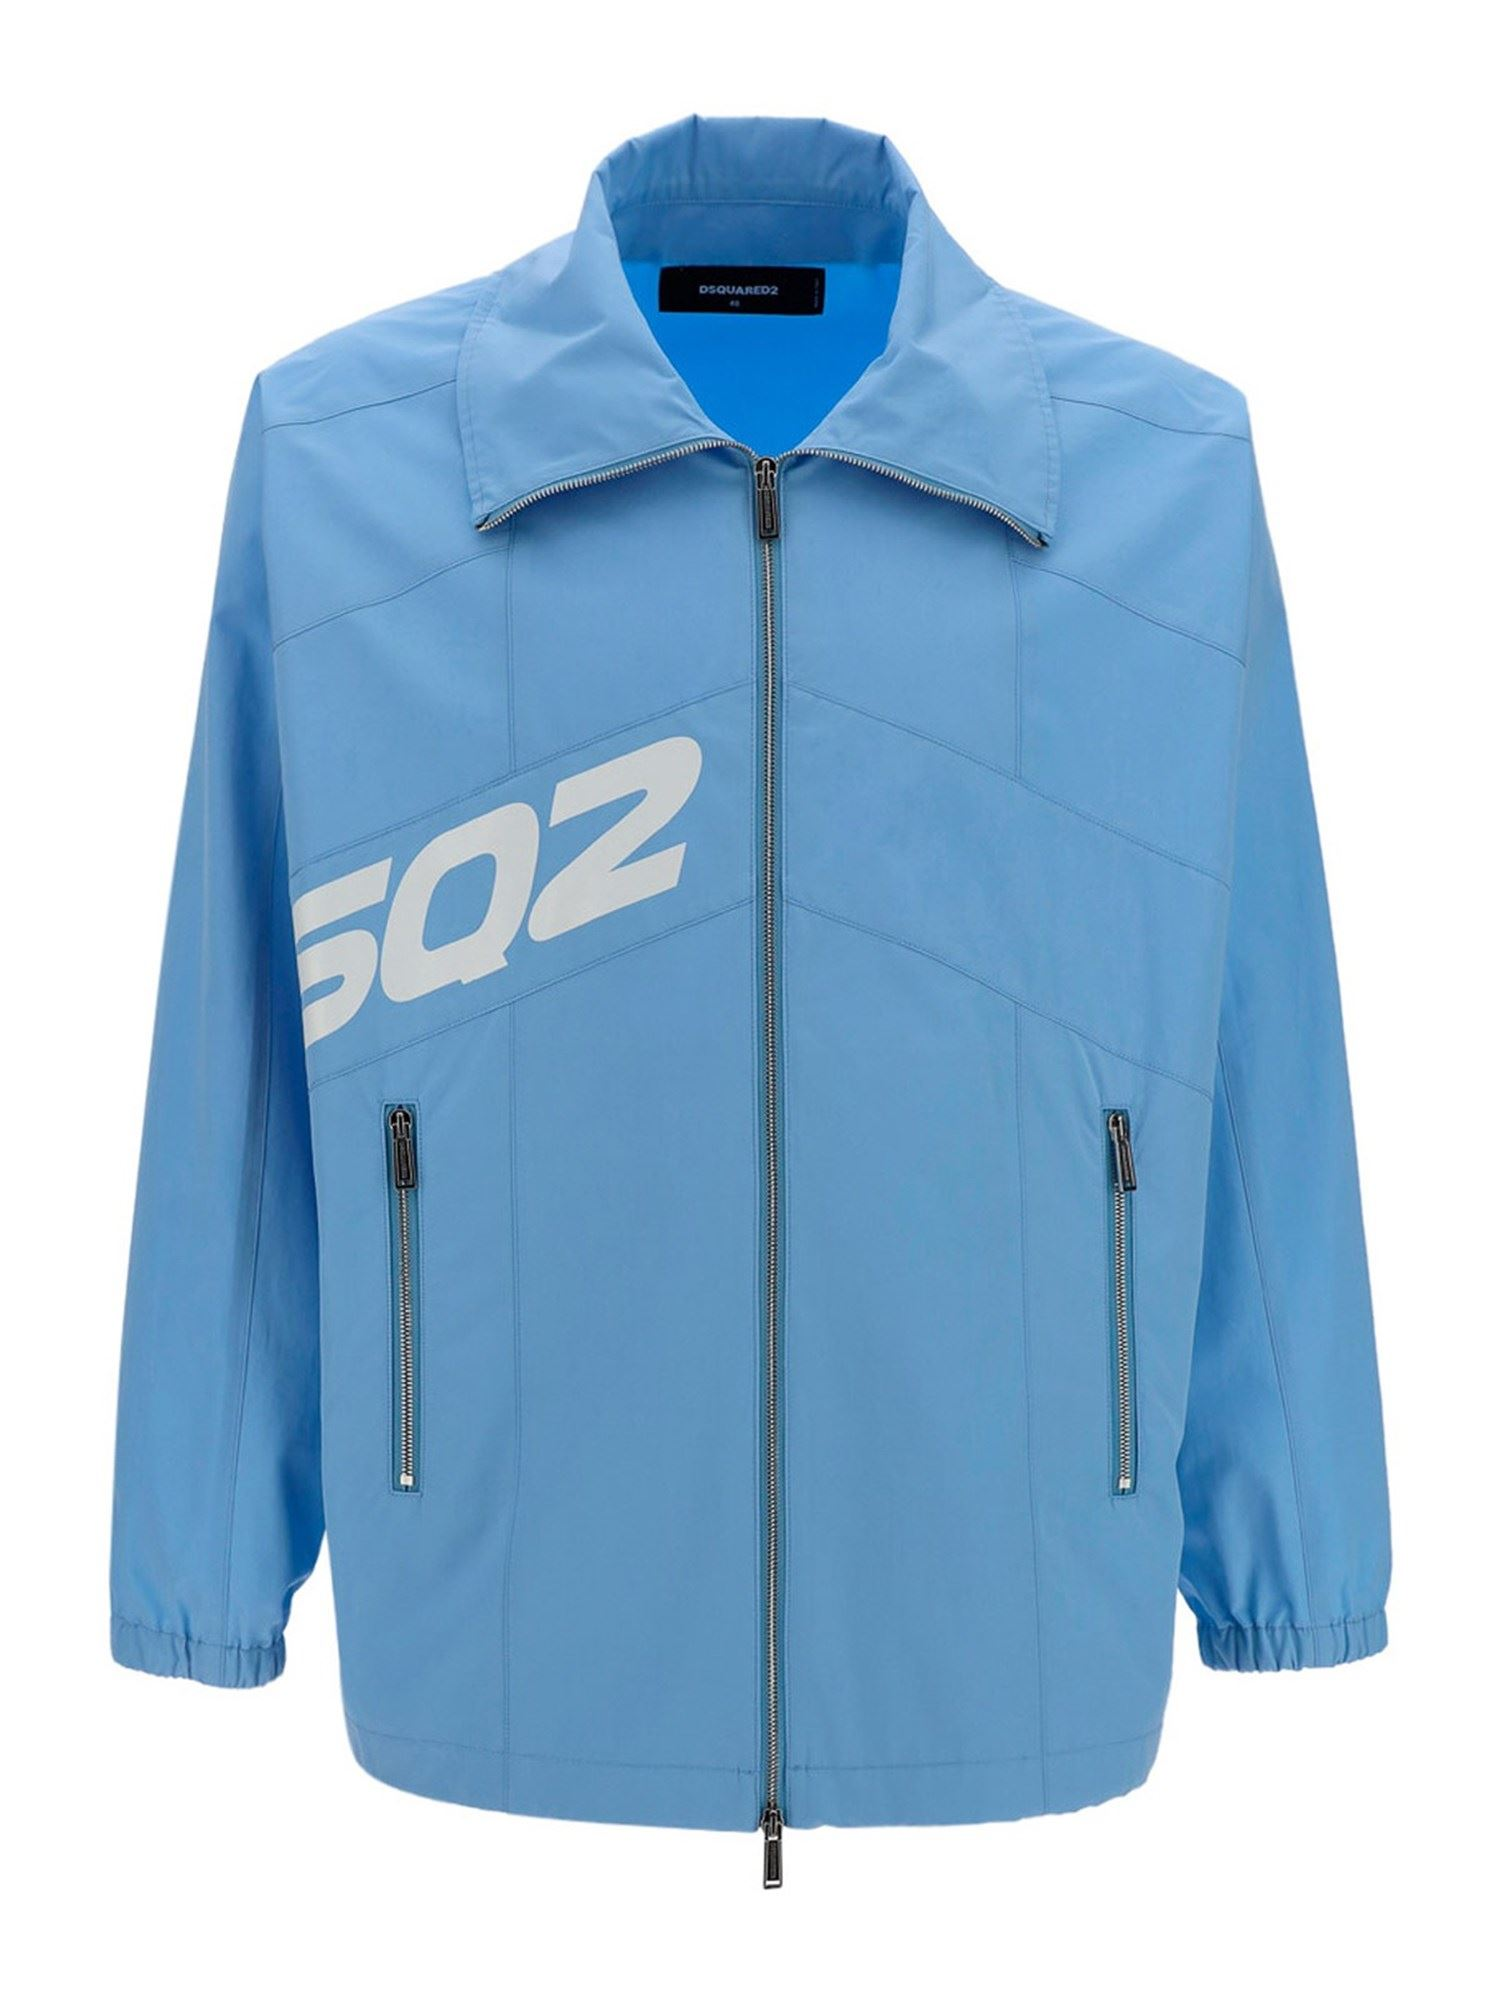 Dsquared2 Cottons LOGO COTTON JACKET IN LIGHT BLUE